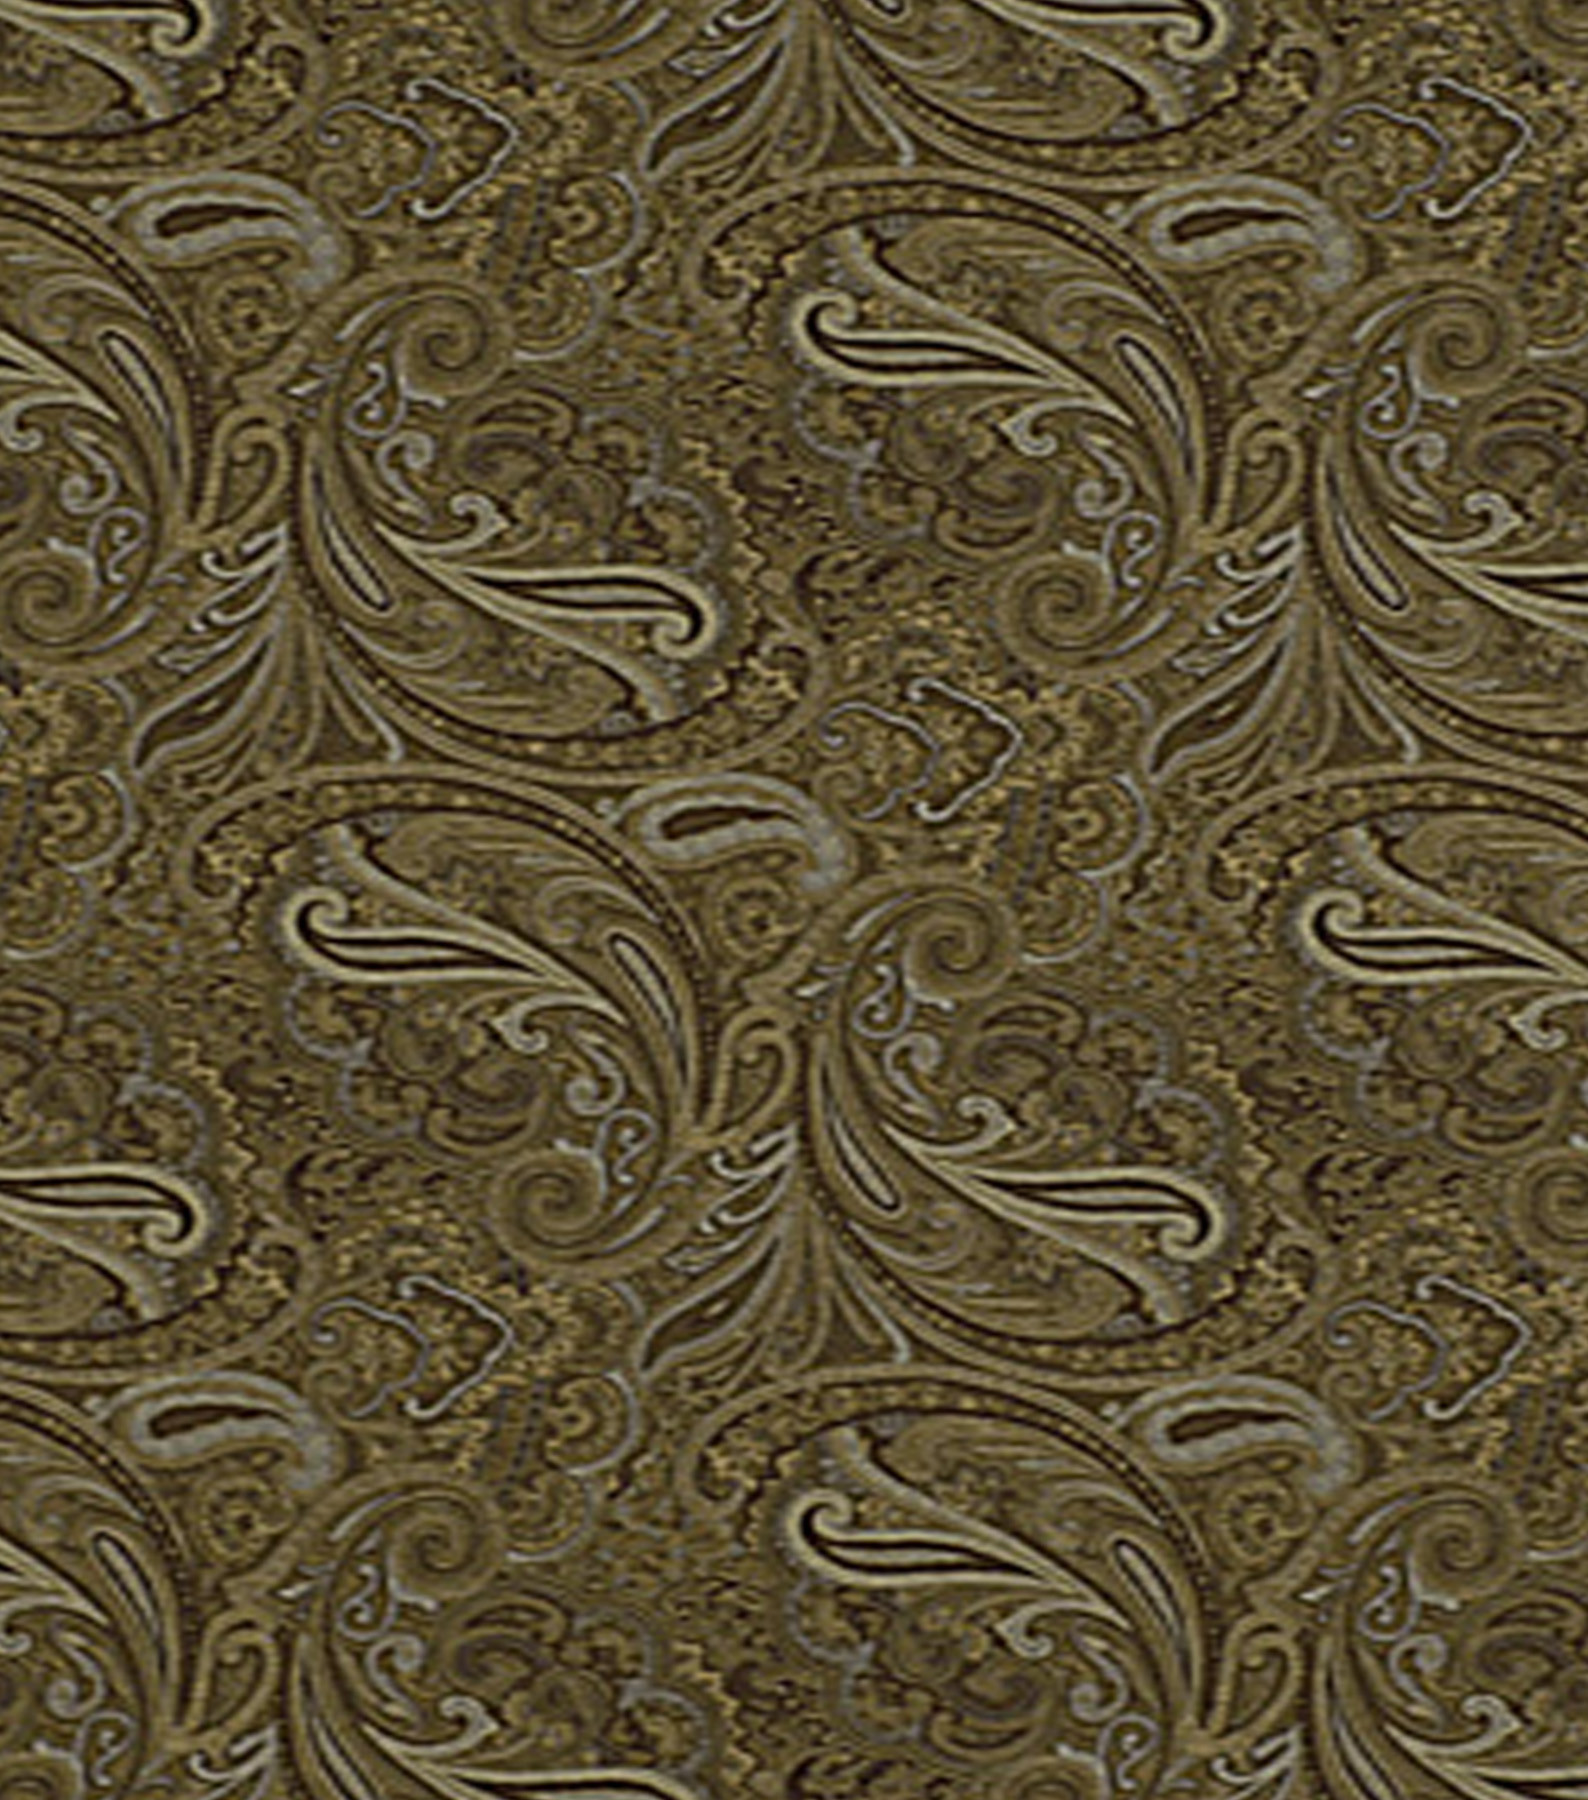 Home Decor 8\u0022x8\u0022 Fabric Swatch-Print Fabric Robert Allen Patna Paisley Fawn